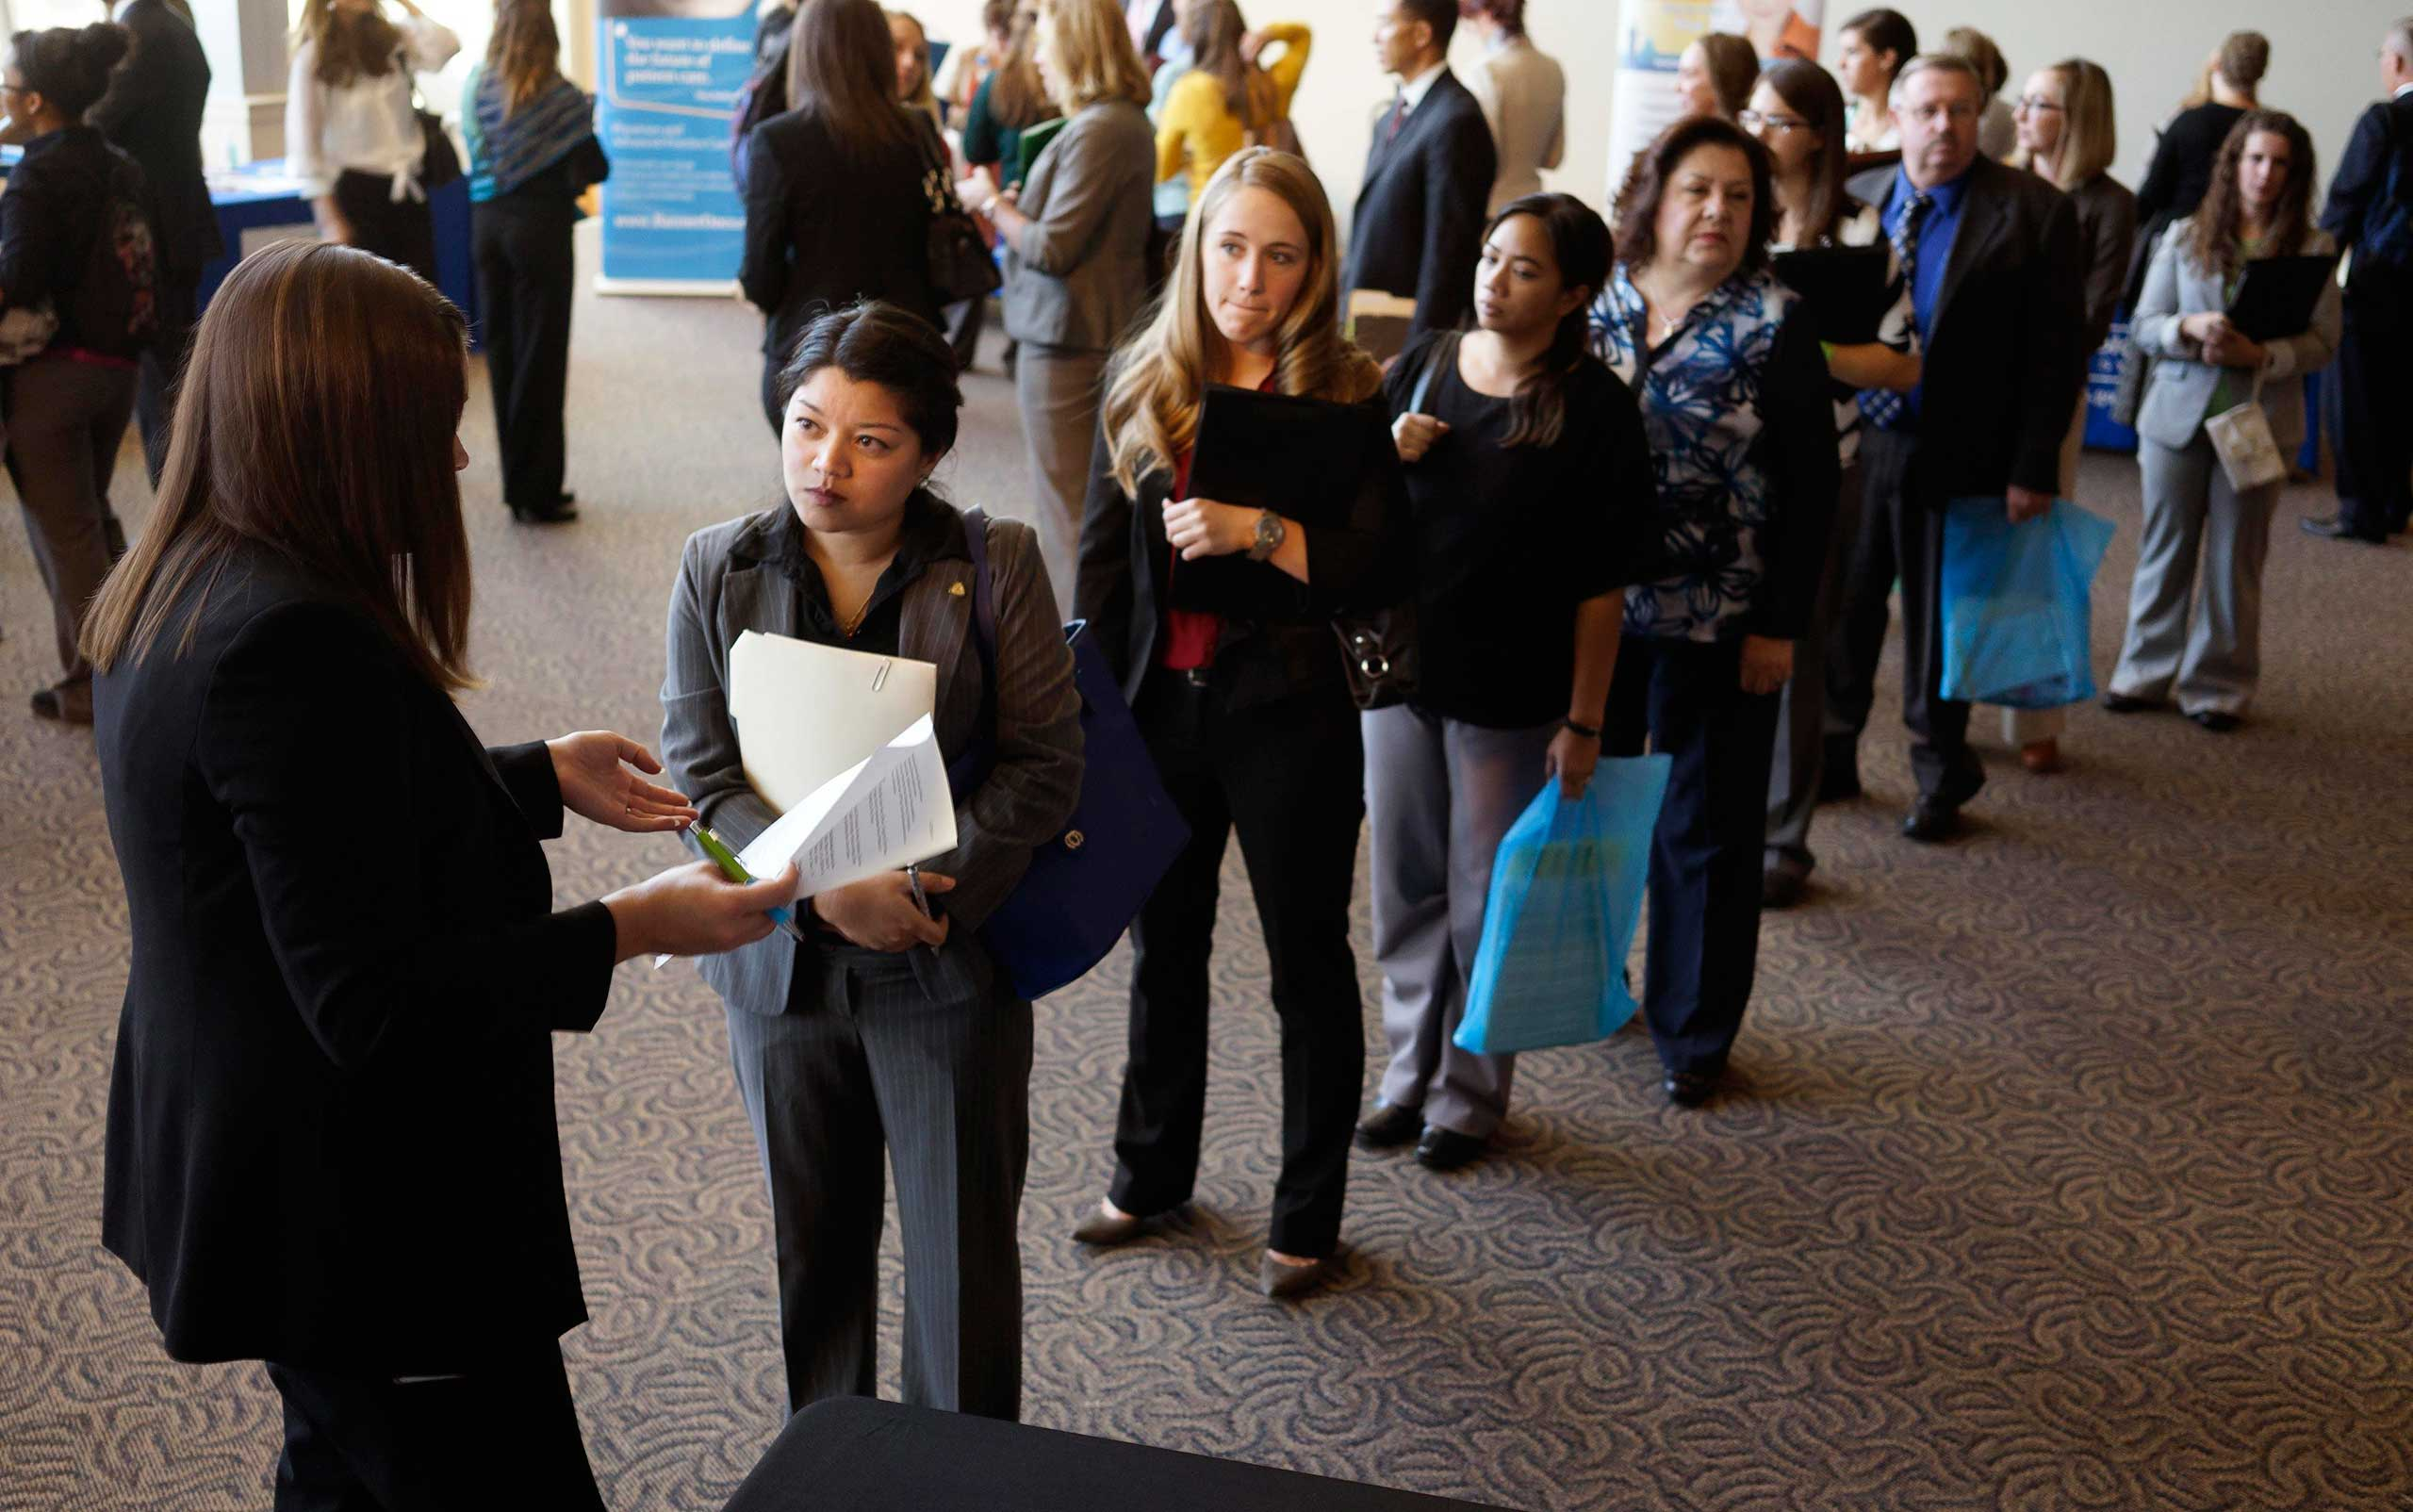 Jobseekers wait to talk to a recruiter at the Colorado Hospital Association's health care career event in Denver, Oct. 13, 2014.